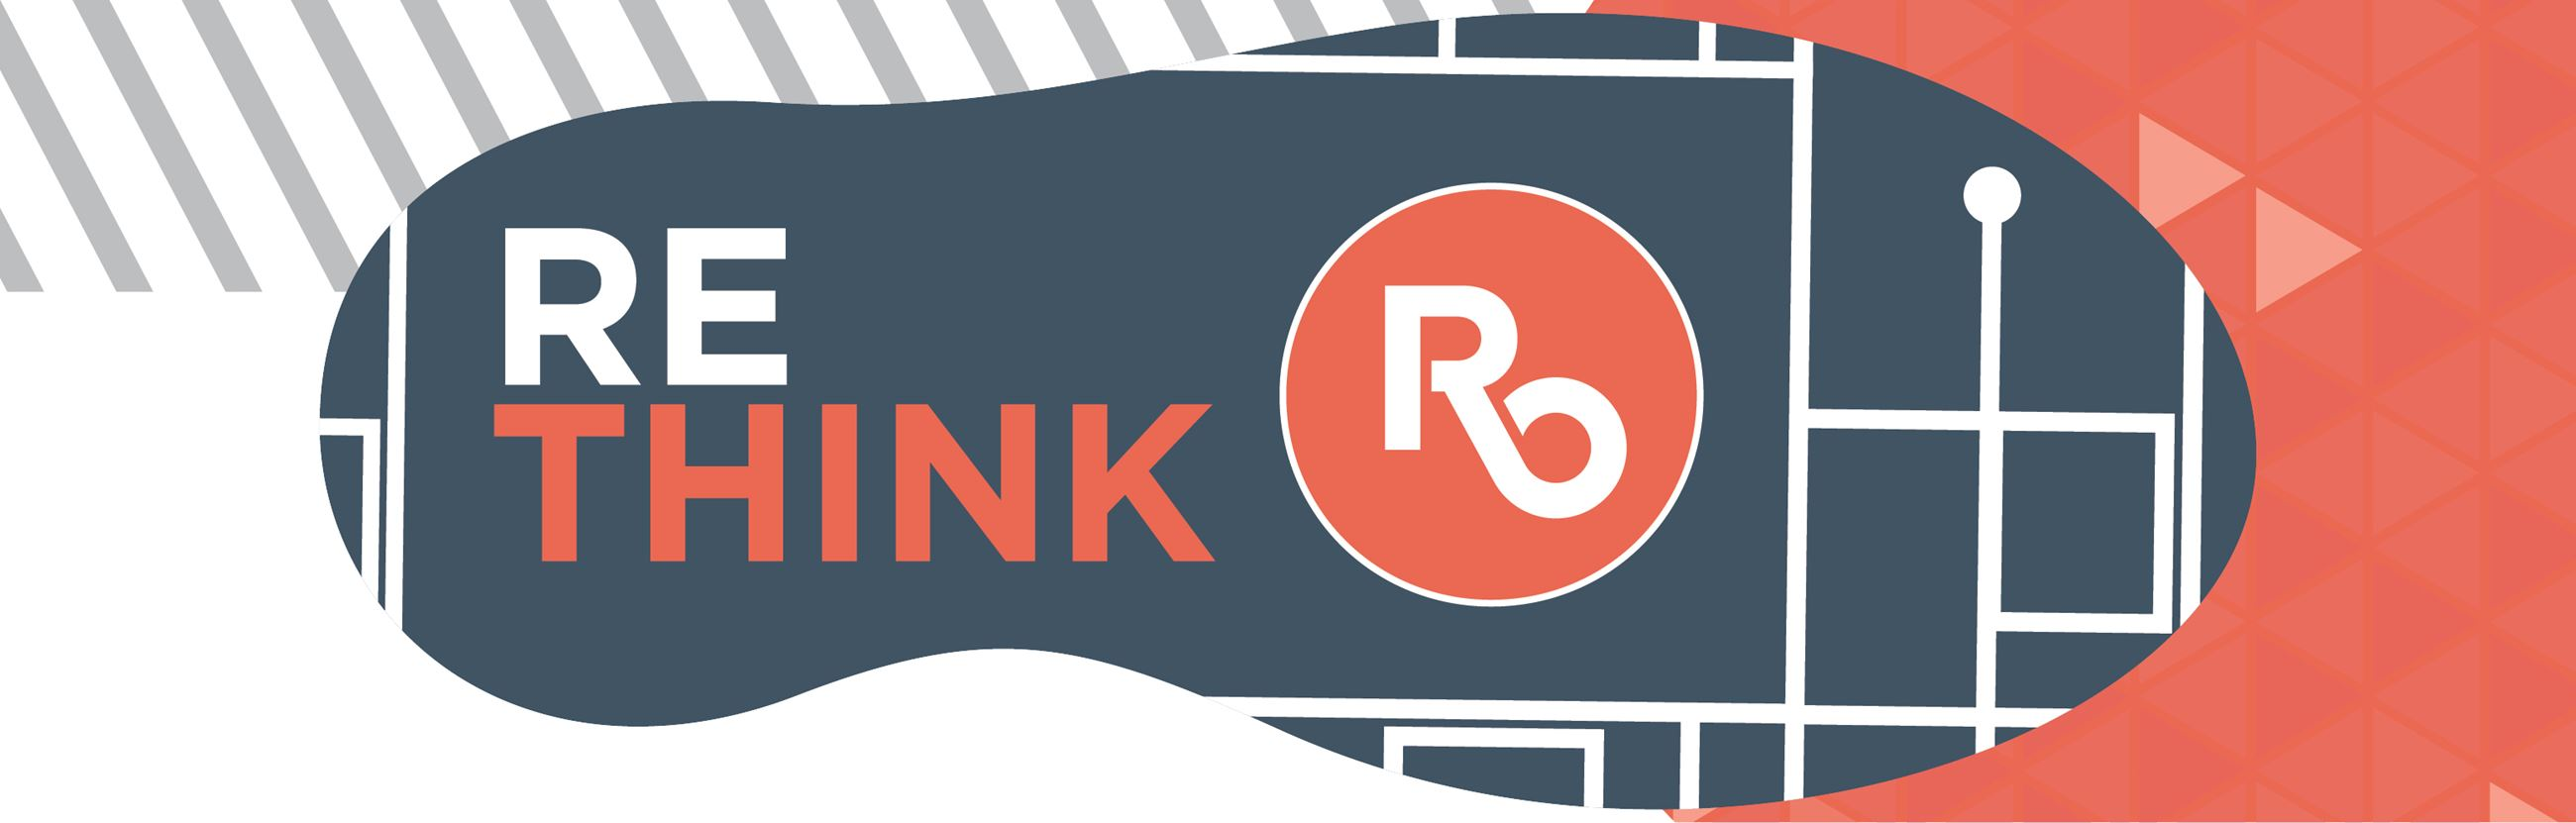 Rethink RO Web Page Header